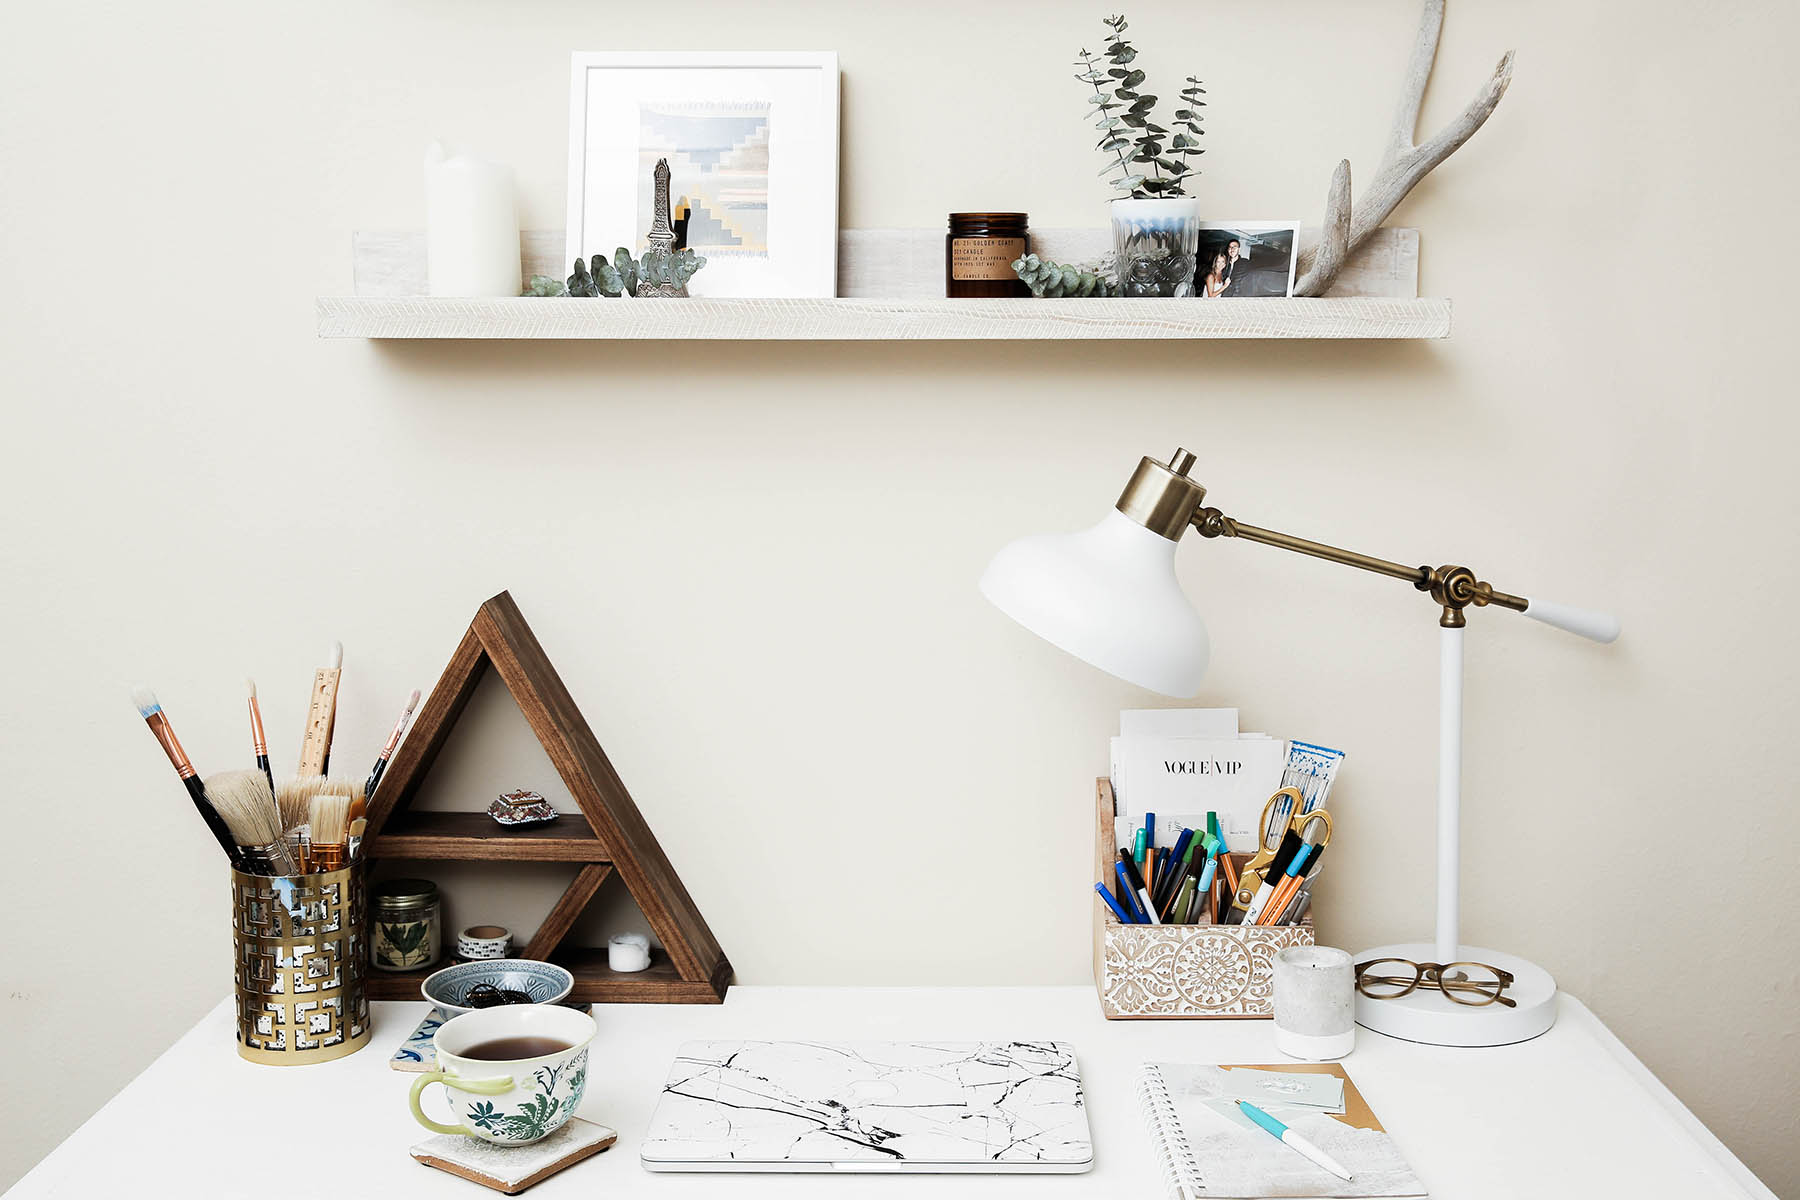 home office desk with Minted prints and shelves